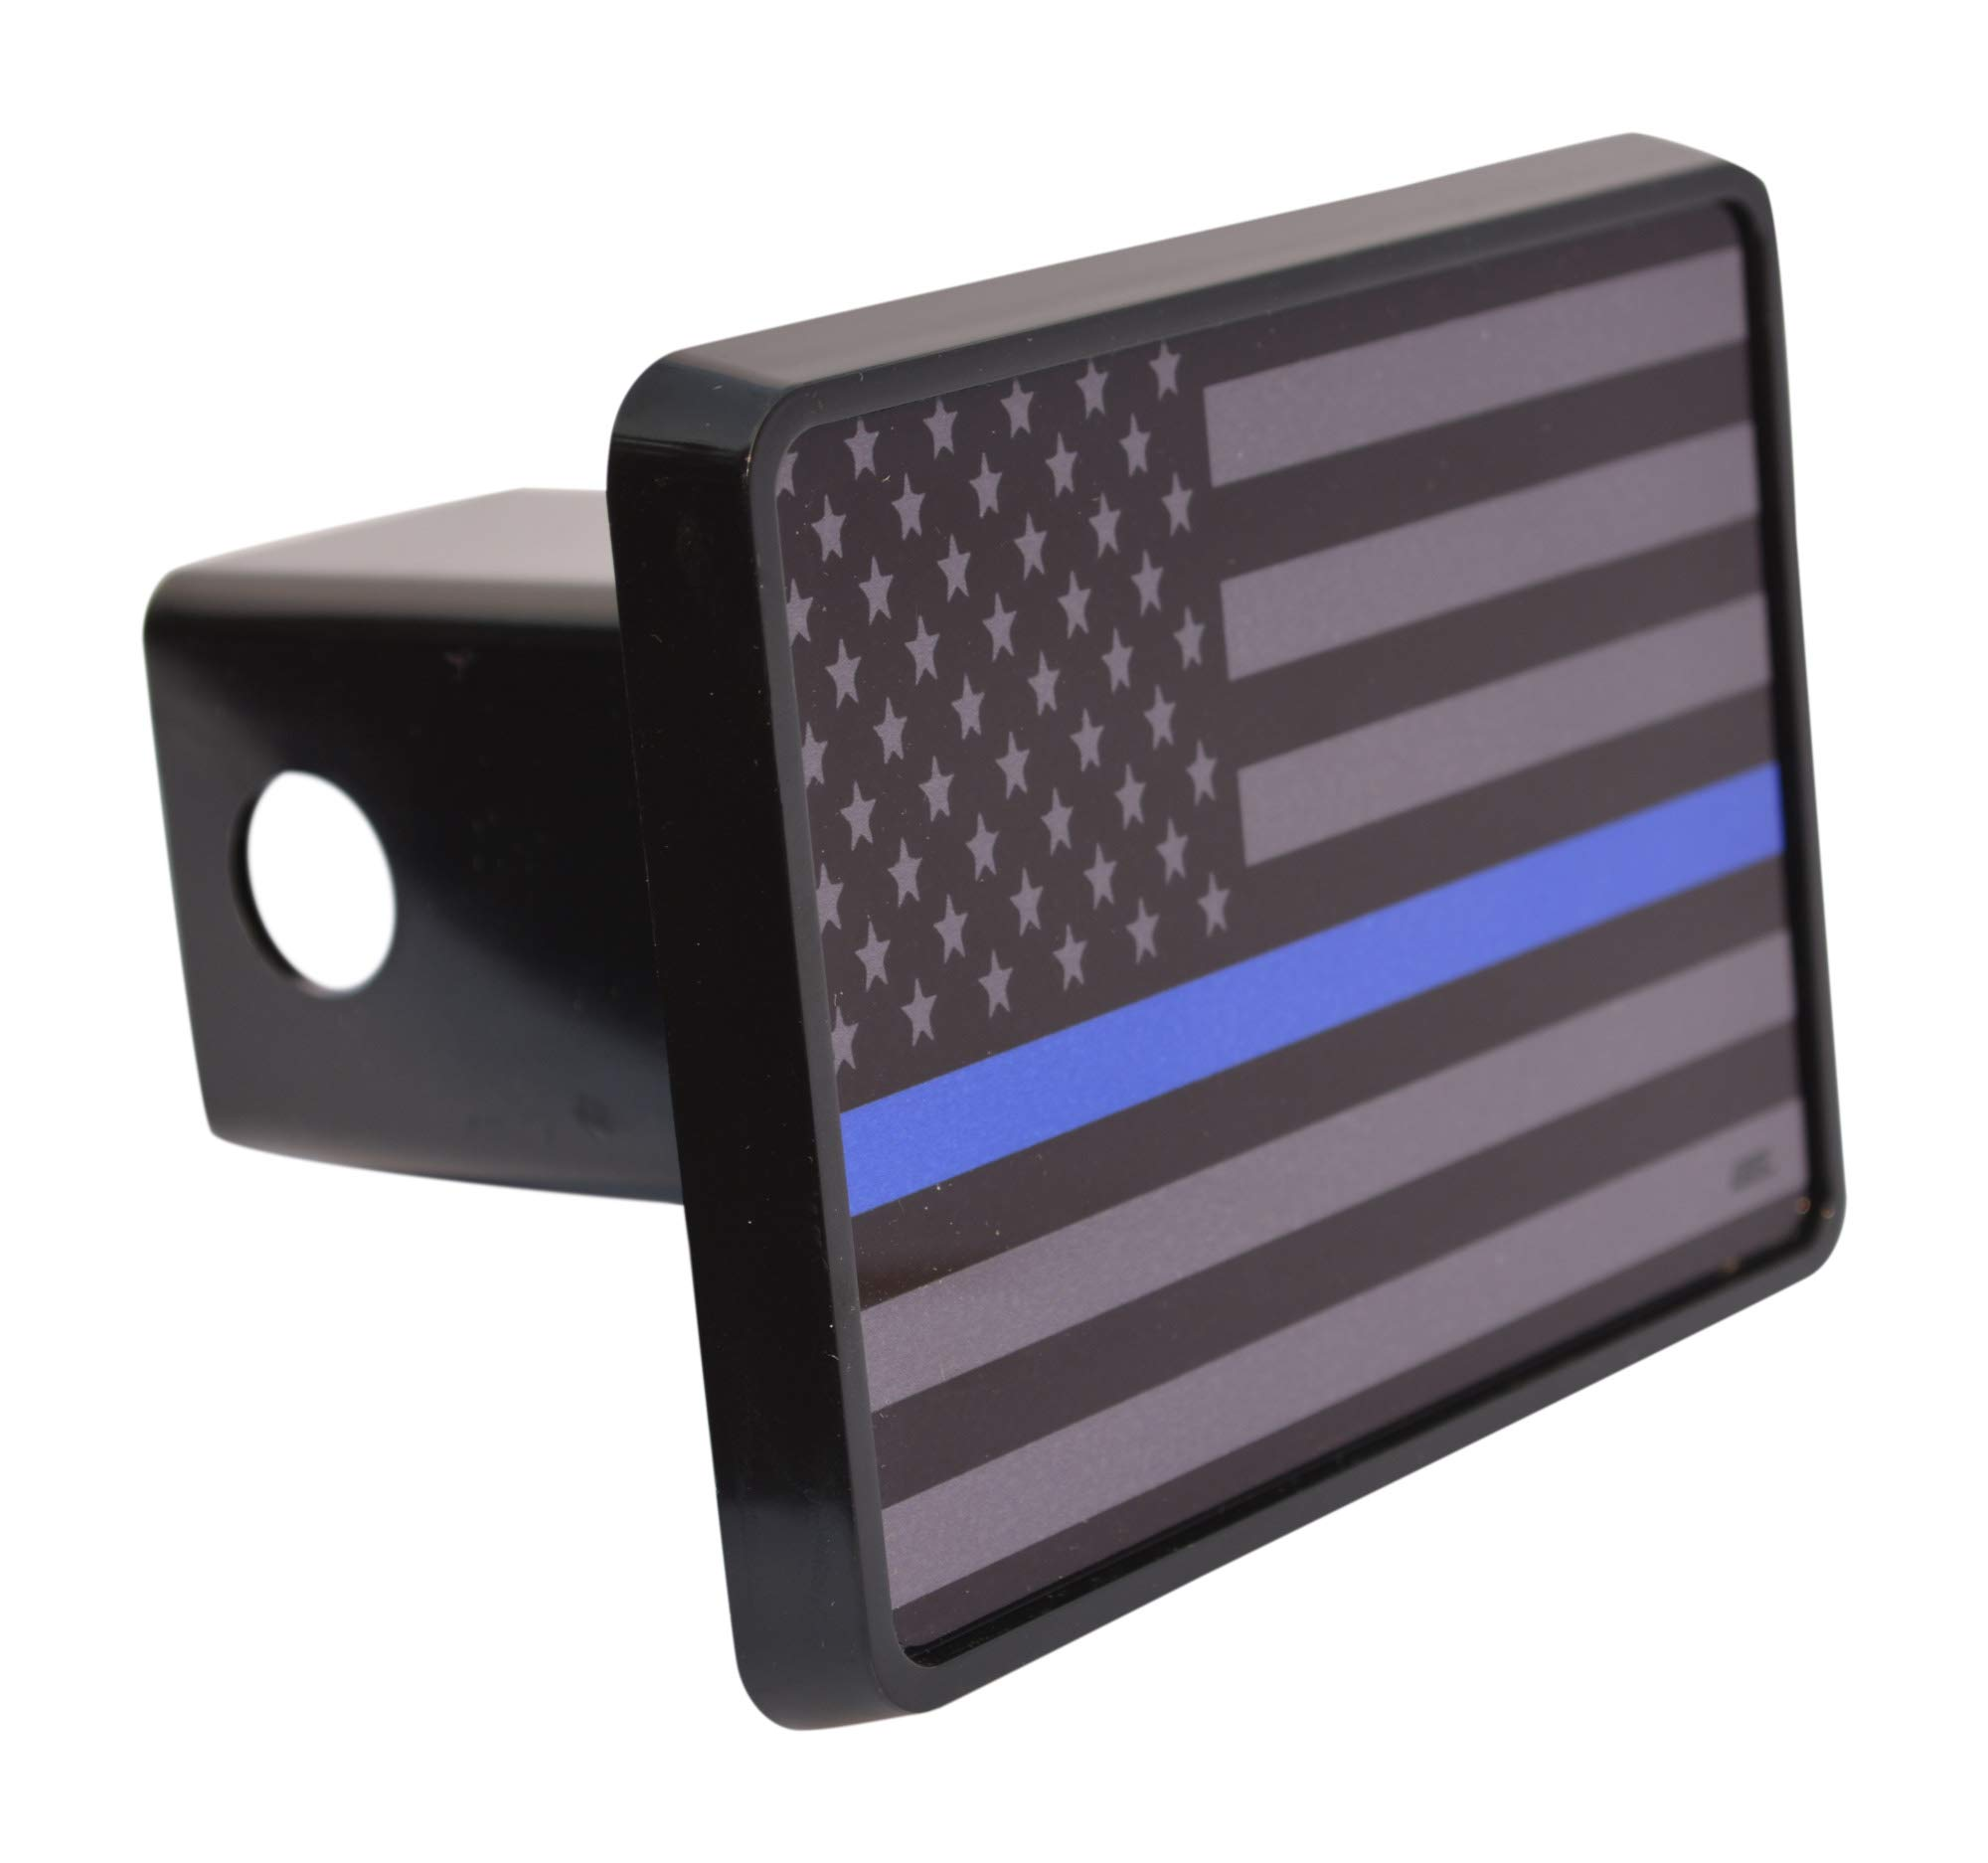 Subdued Thin Blue Line Flag Trailer Hitch Cover Plug US Blue Lives Matter Police Officer Law Enforcement by Rogue River Tactical